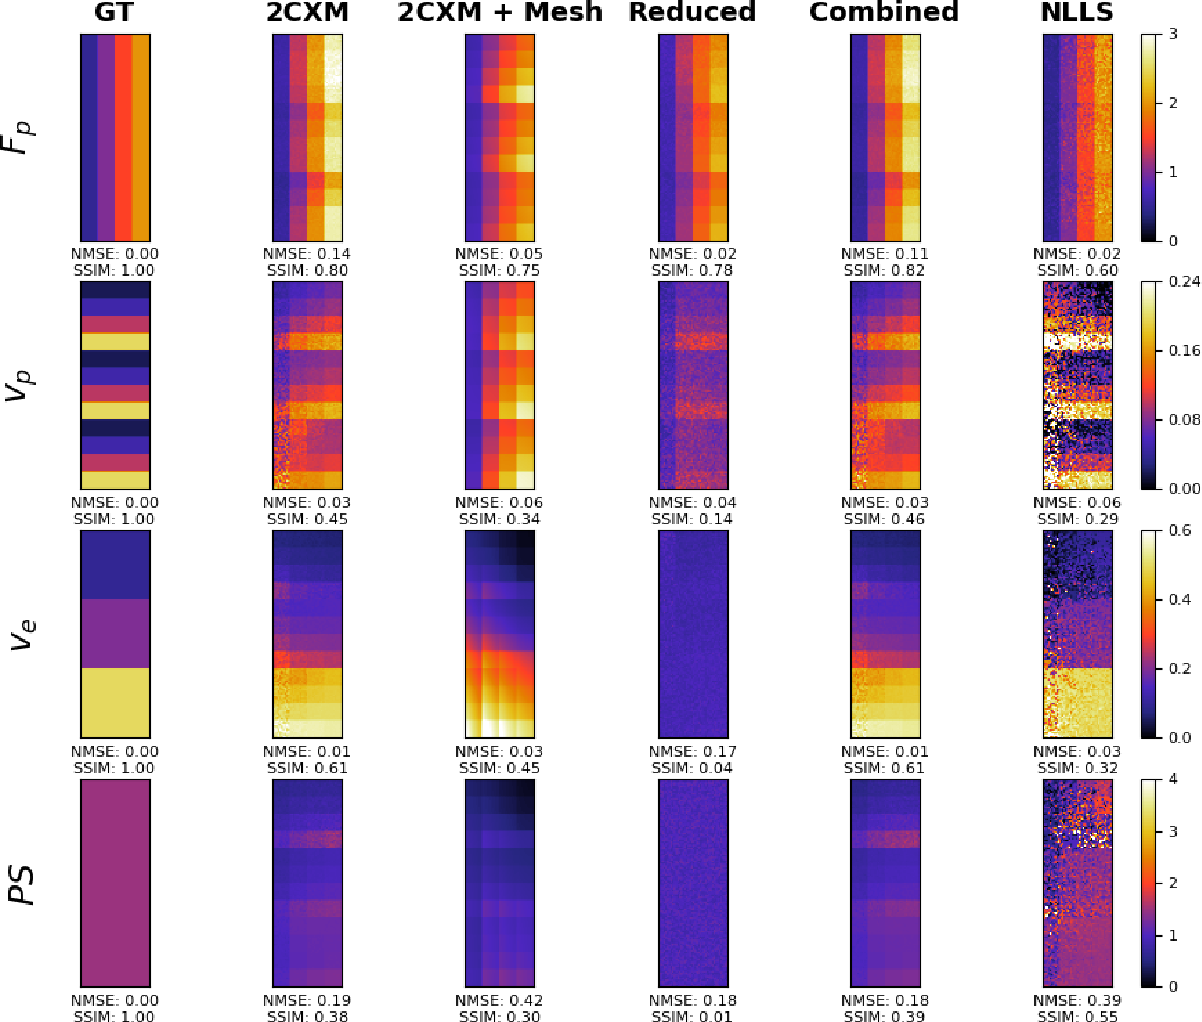 Figure 4 for Physics-informed neural networks for myocardial perfusion MRI quantification